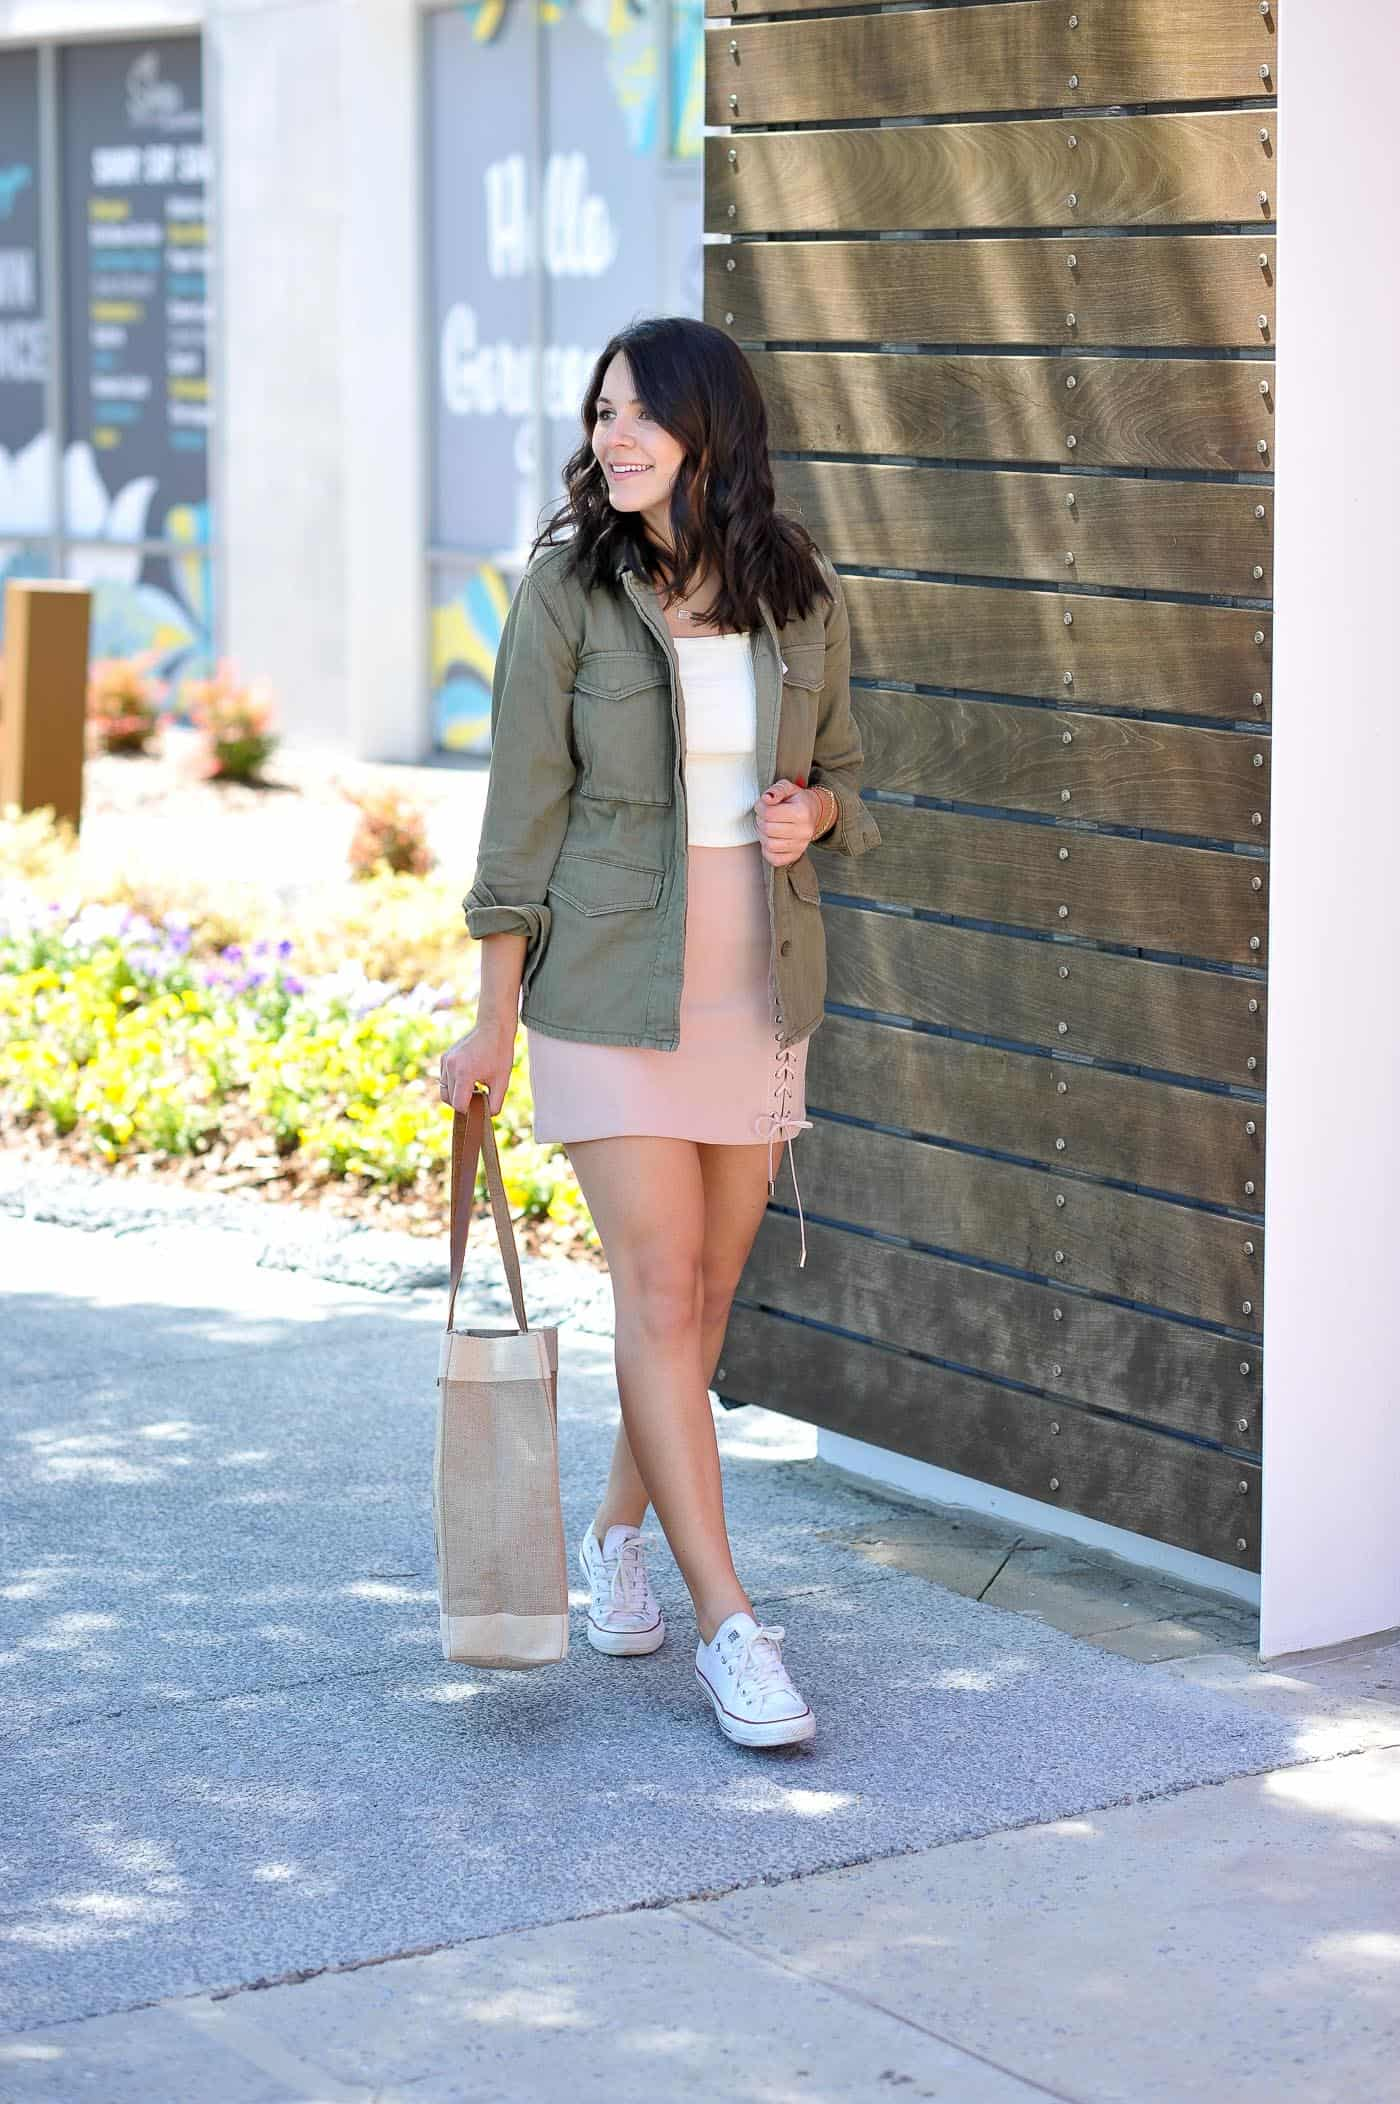 Converse sneaker outfit ideas, lace up blush mini skirt, casual summer outfit ideas - My Style Vita @mystylevita